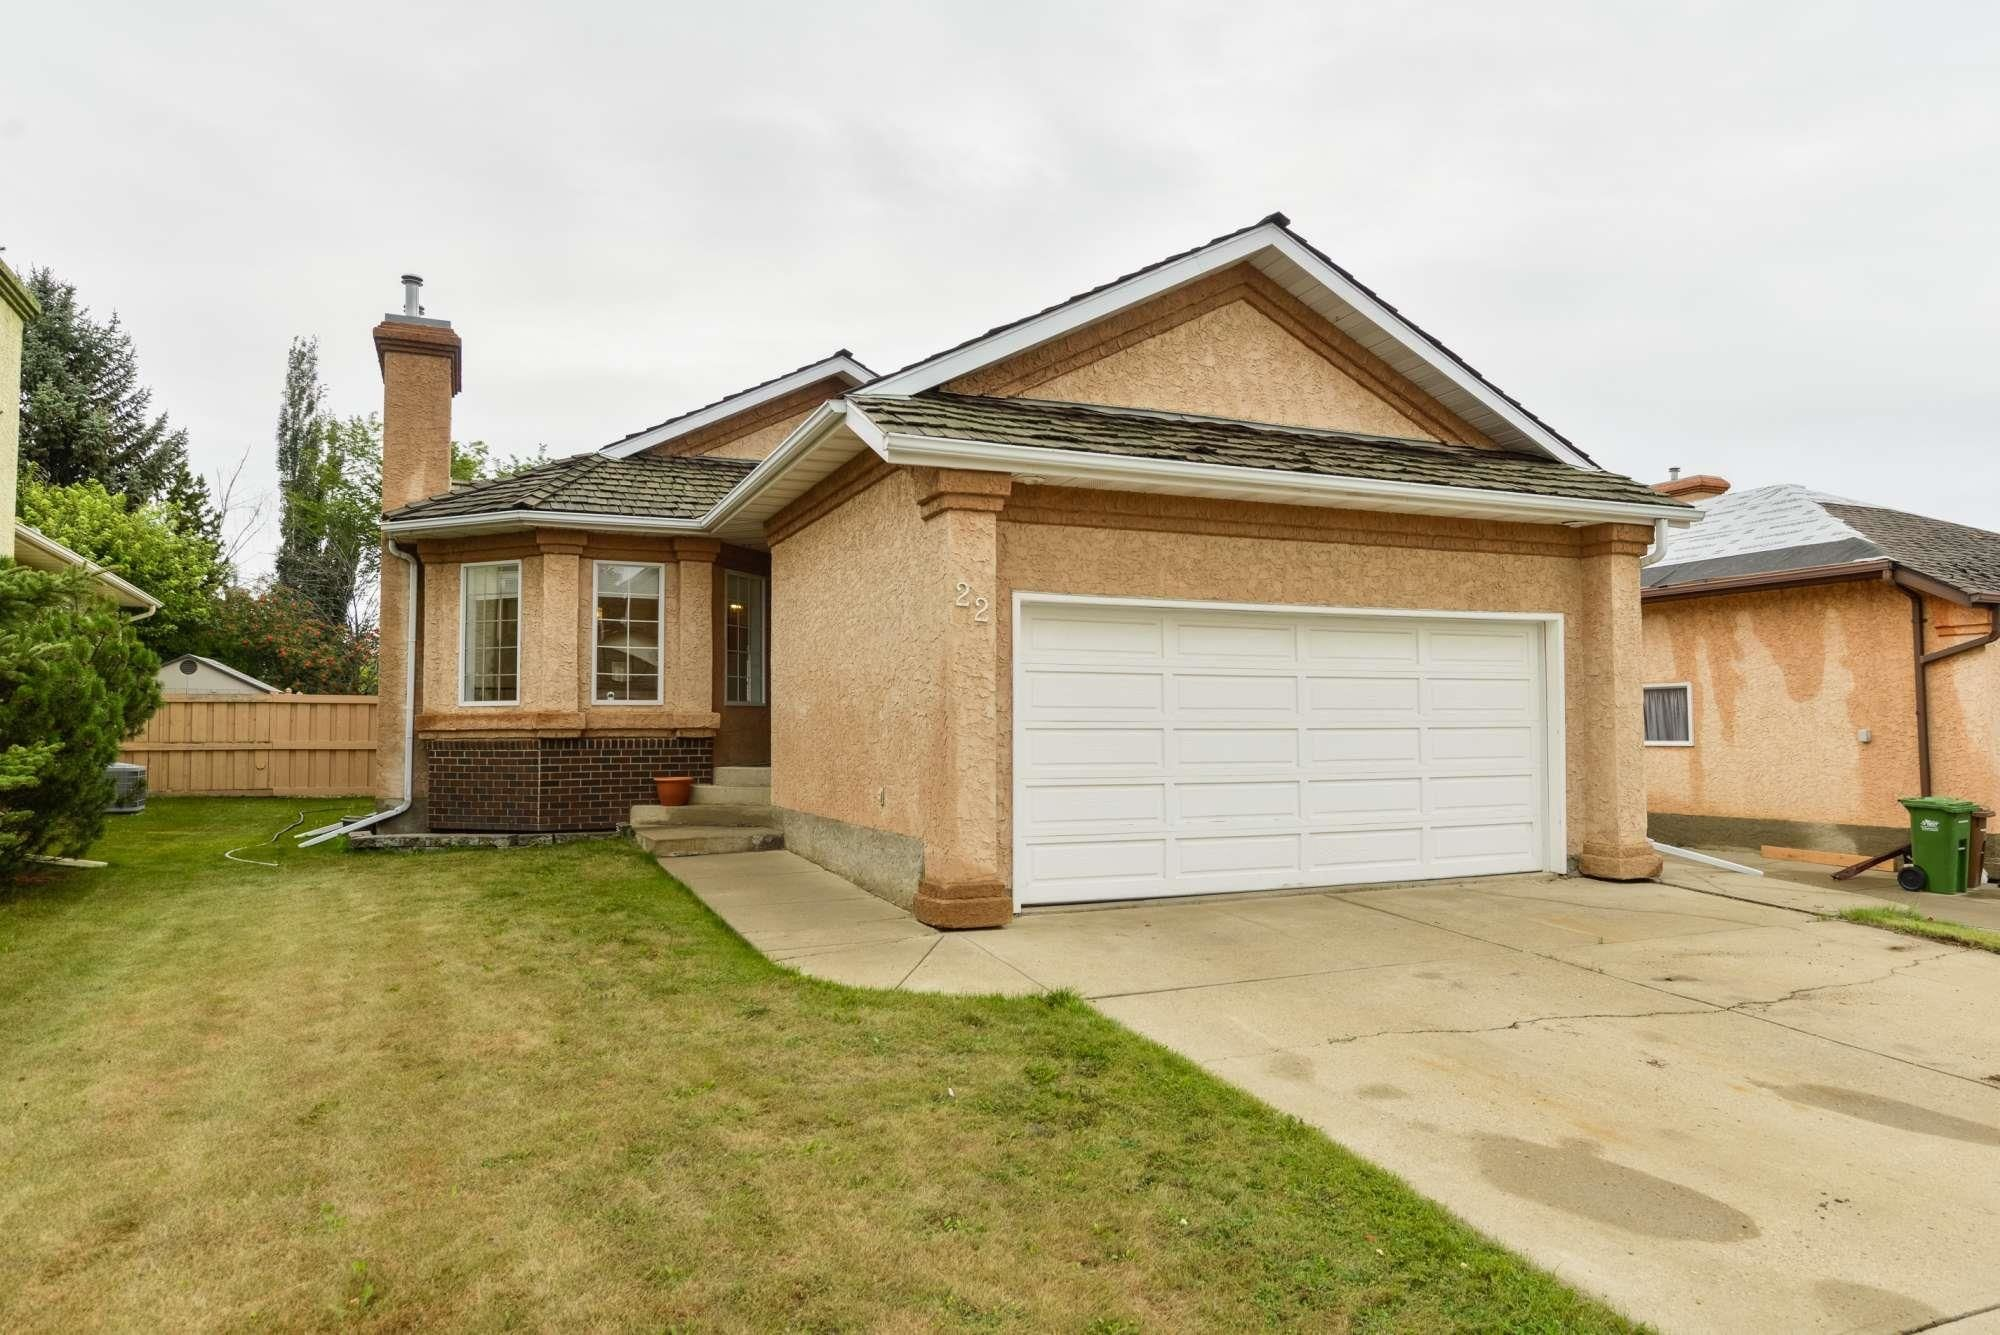 Main Photo: 22 EASTWOOD Place: St. Albert House for sale : MLS®# E4261487